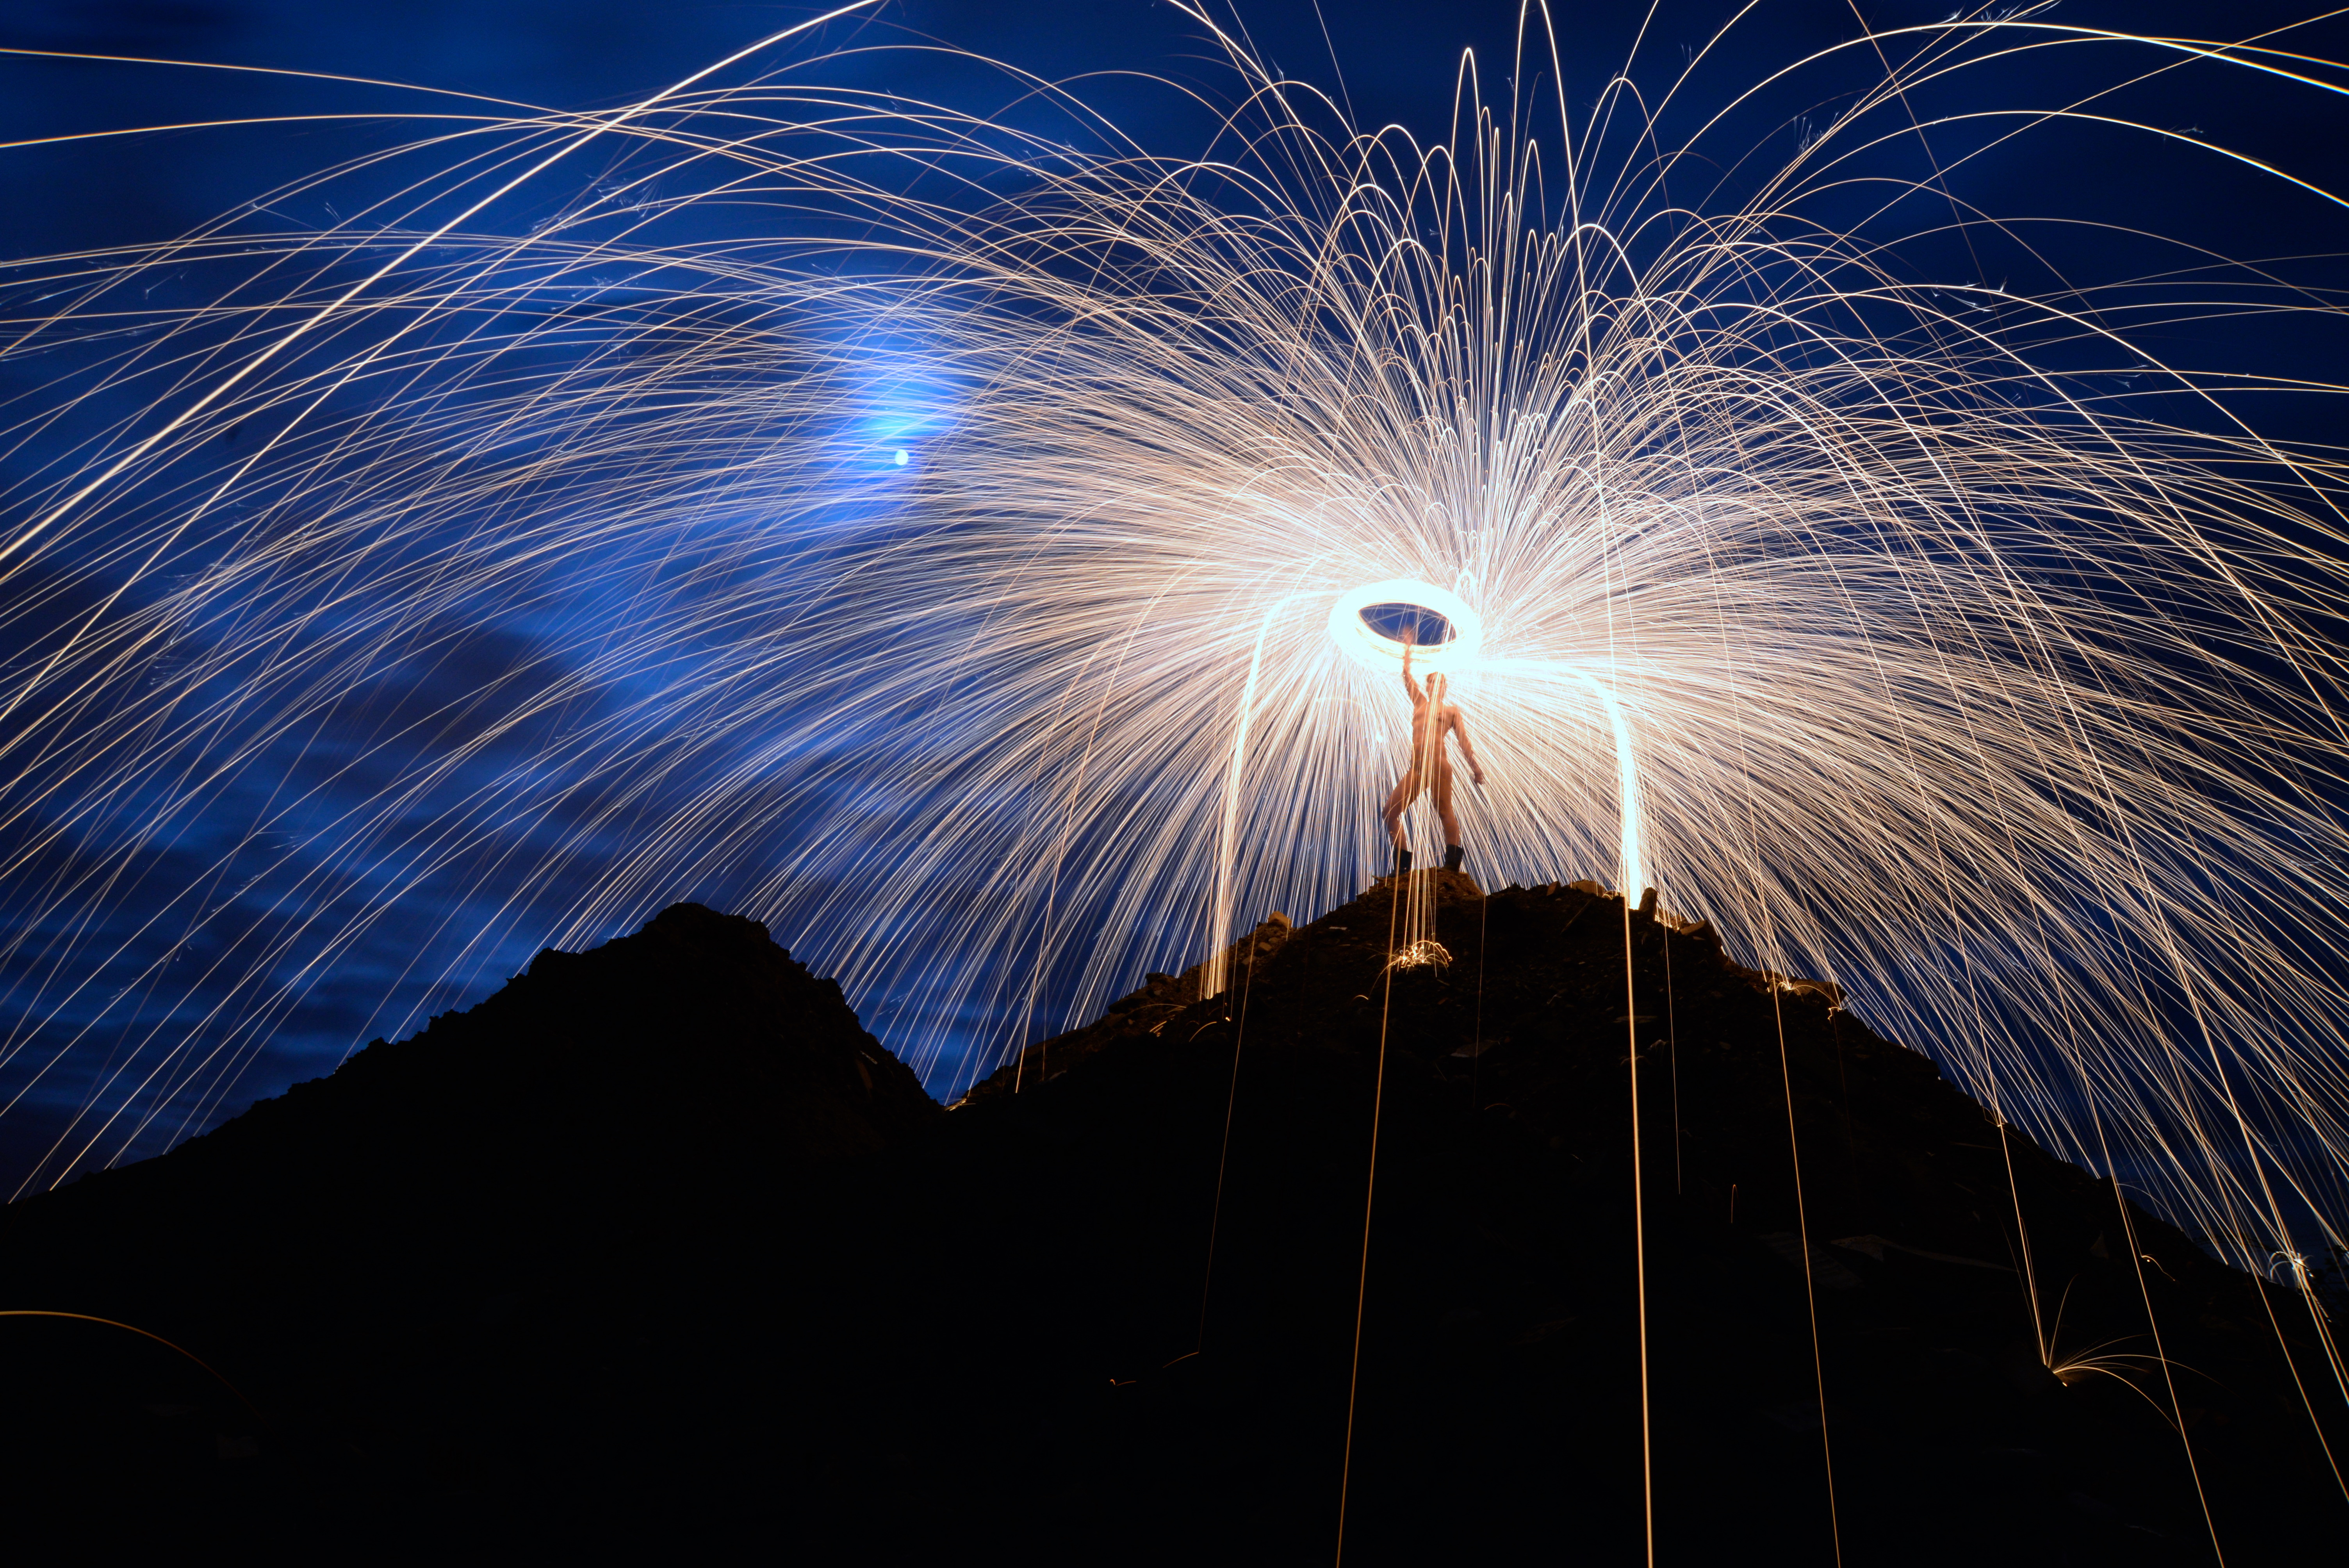 nude steel wool spinning long exposure night photography .jpeg